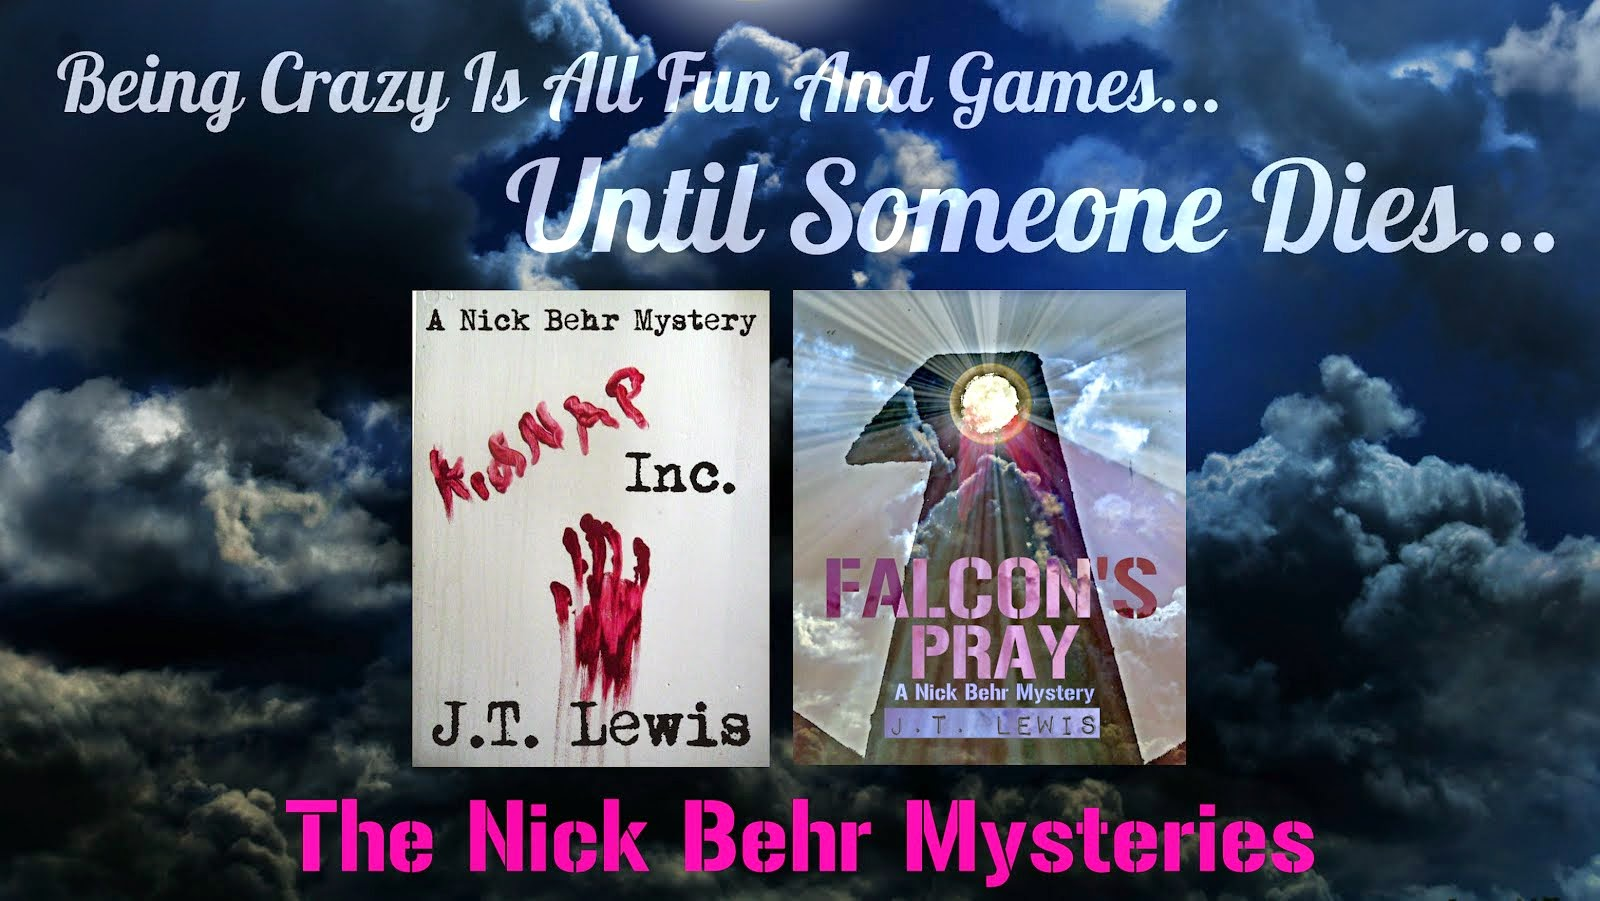 The Nick Behr Mysteries